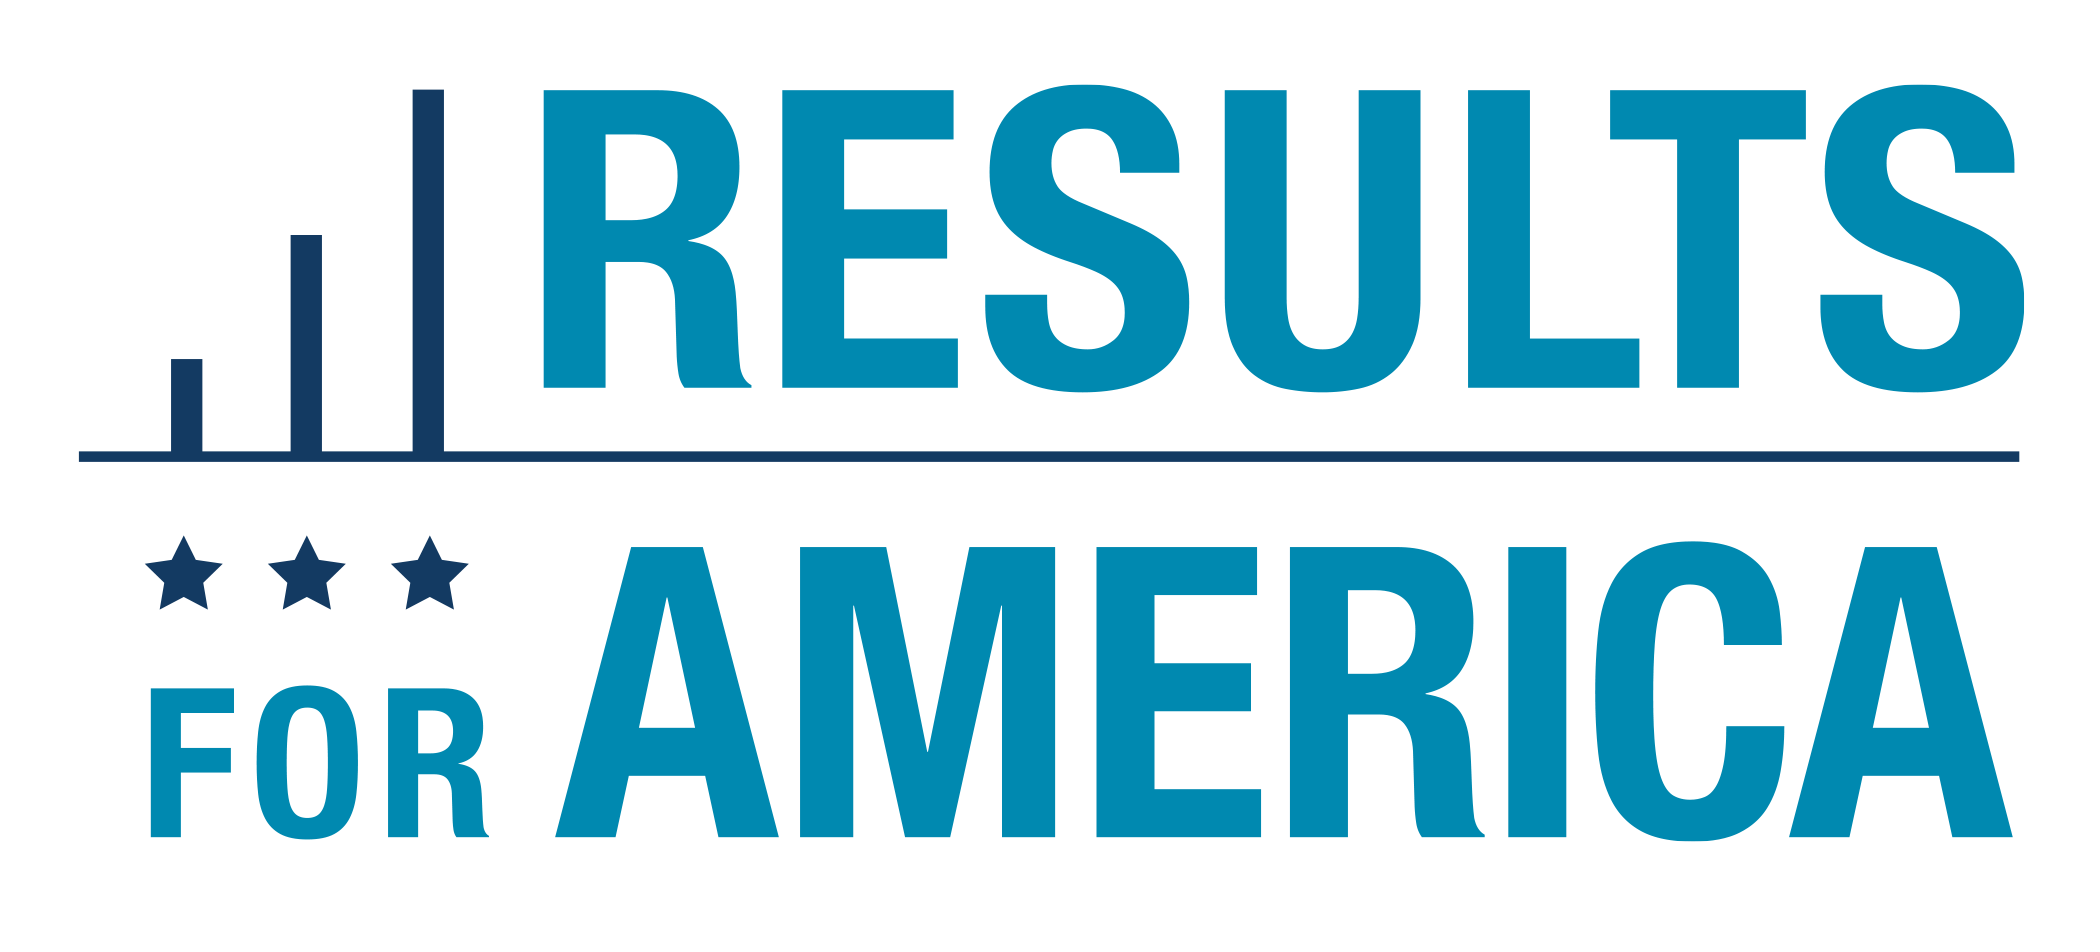 Results-for-America